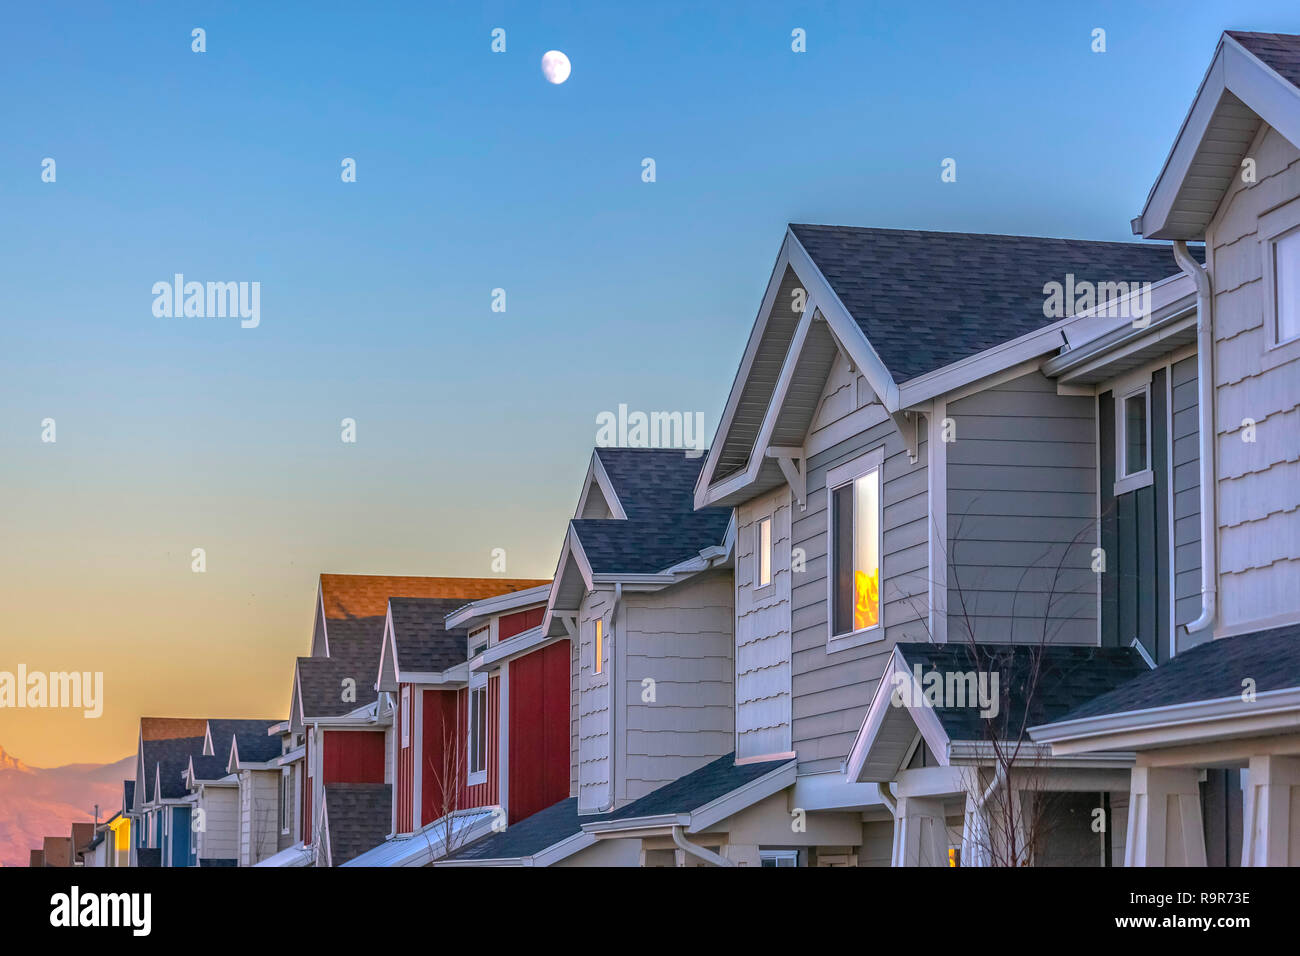 Moon above Townhomes at sunset in Utah Valley - Stock Image